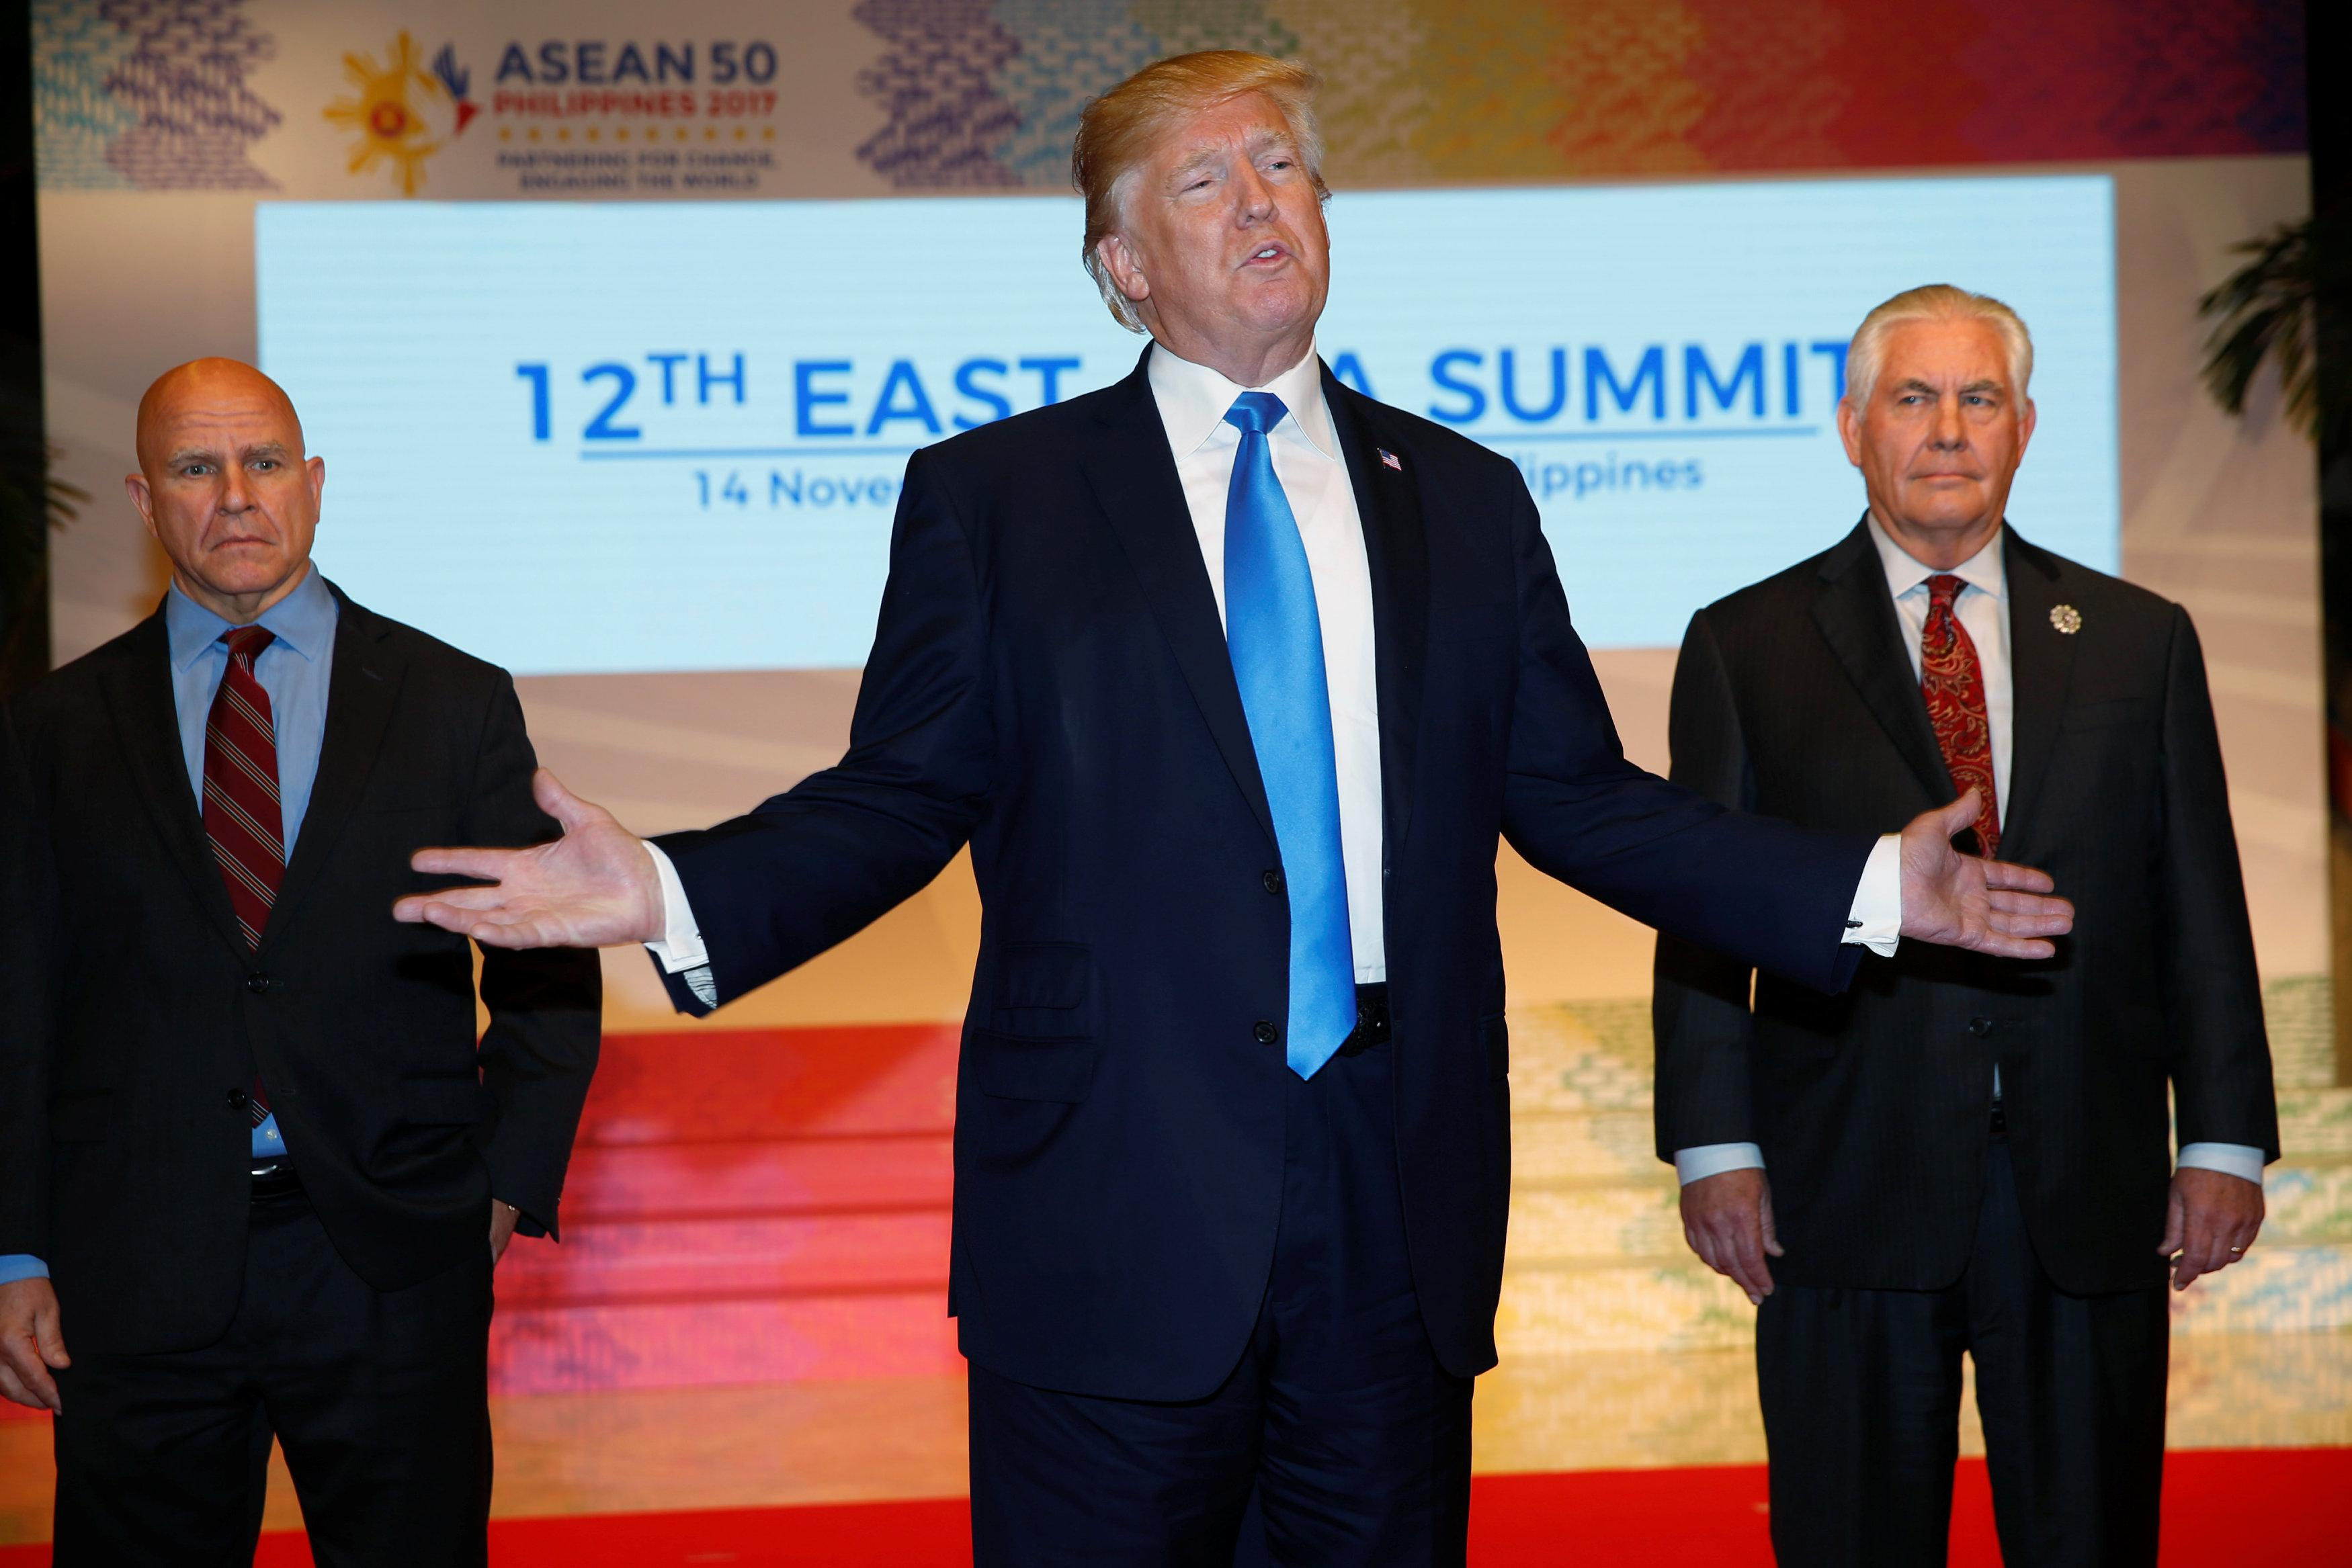 U.S. President Donald Trump makes remarks to the media as he attends the 12th East Asia Summit in Manila, Philippines November 14, 2017. Seen alongside are U.S. National Security Advisor H.R. McMaster (L) and U.S. Secretary of State Rex Tillerson (R). Jonathan Ernst